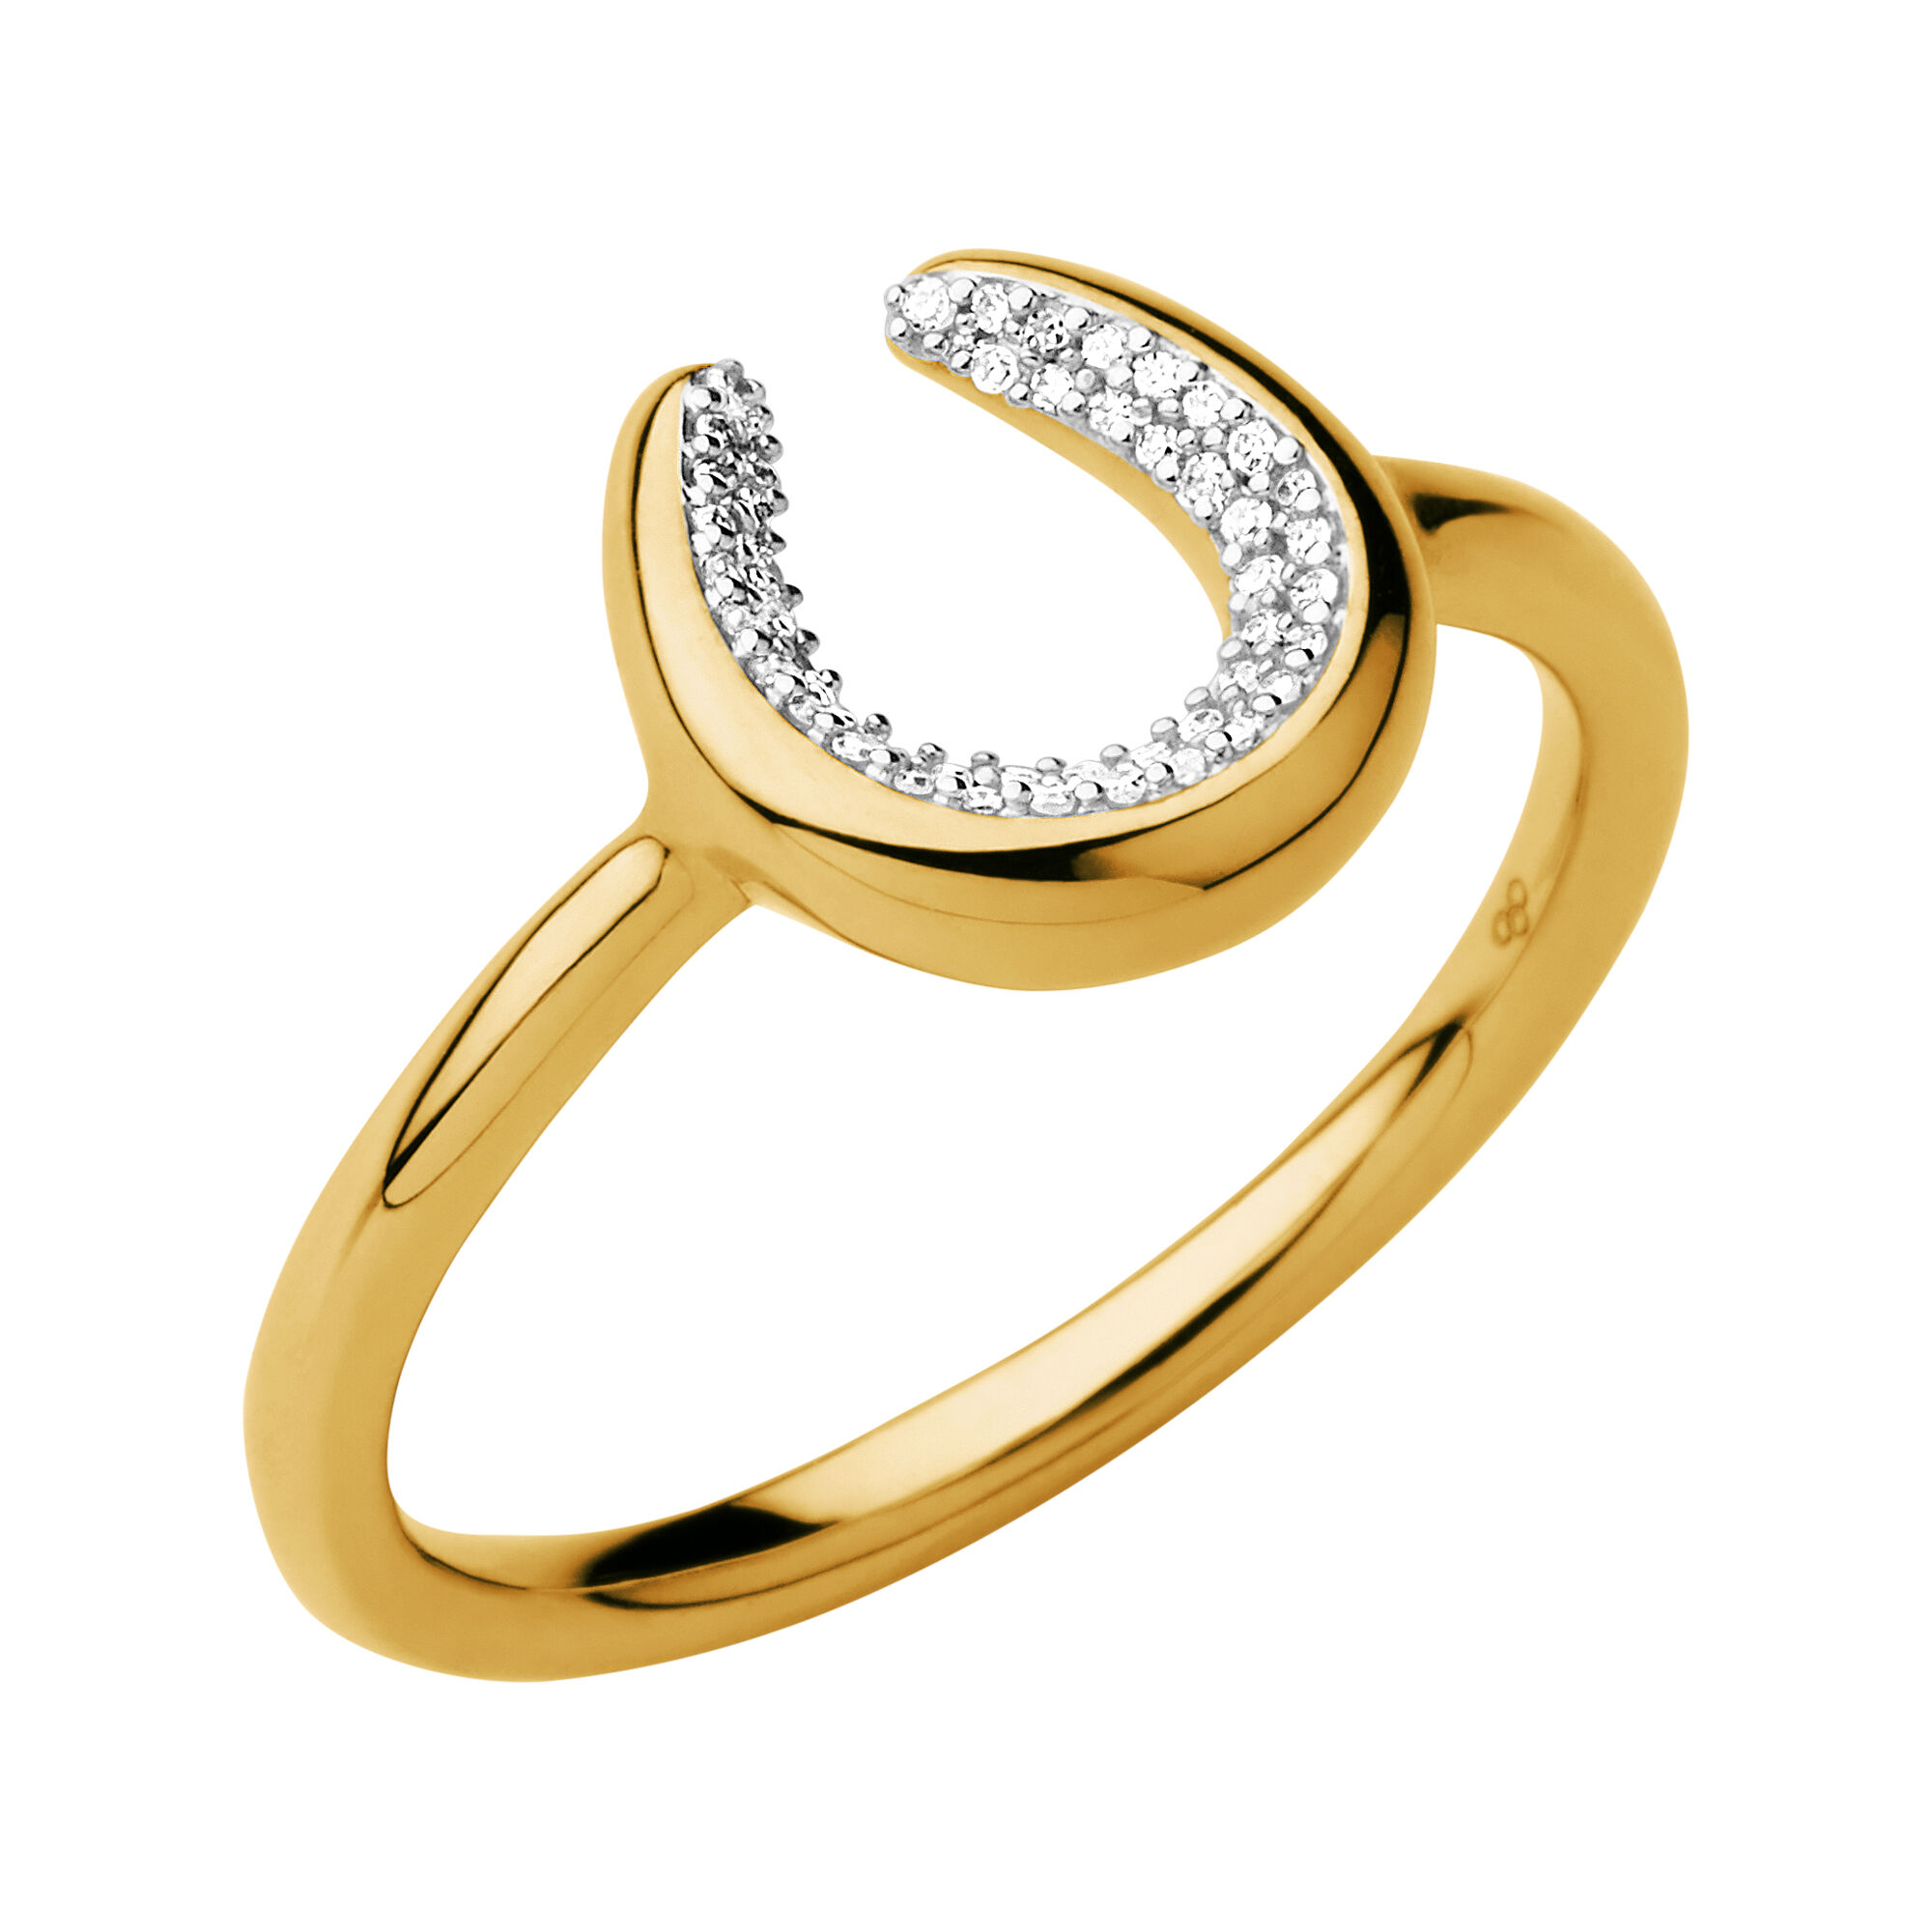 just gold women for with diamonds shop pure ring womens sale jewels wedding lady brands yellow rings online